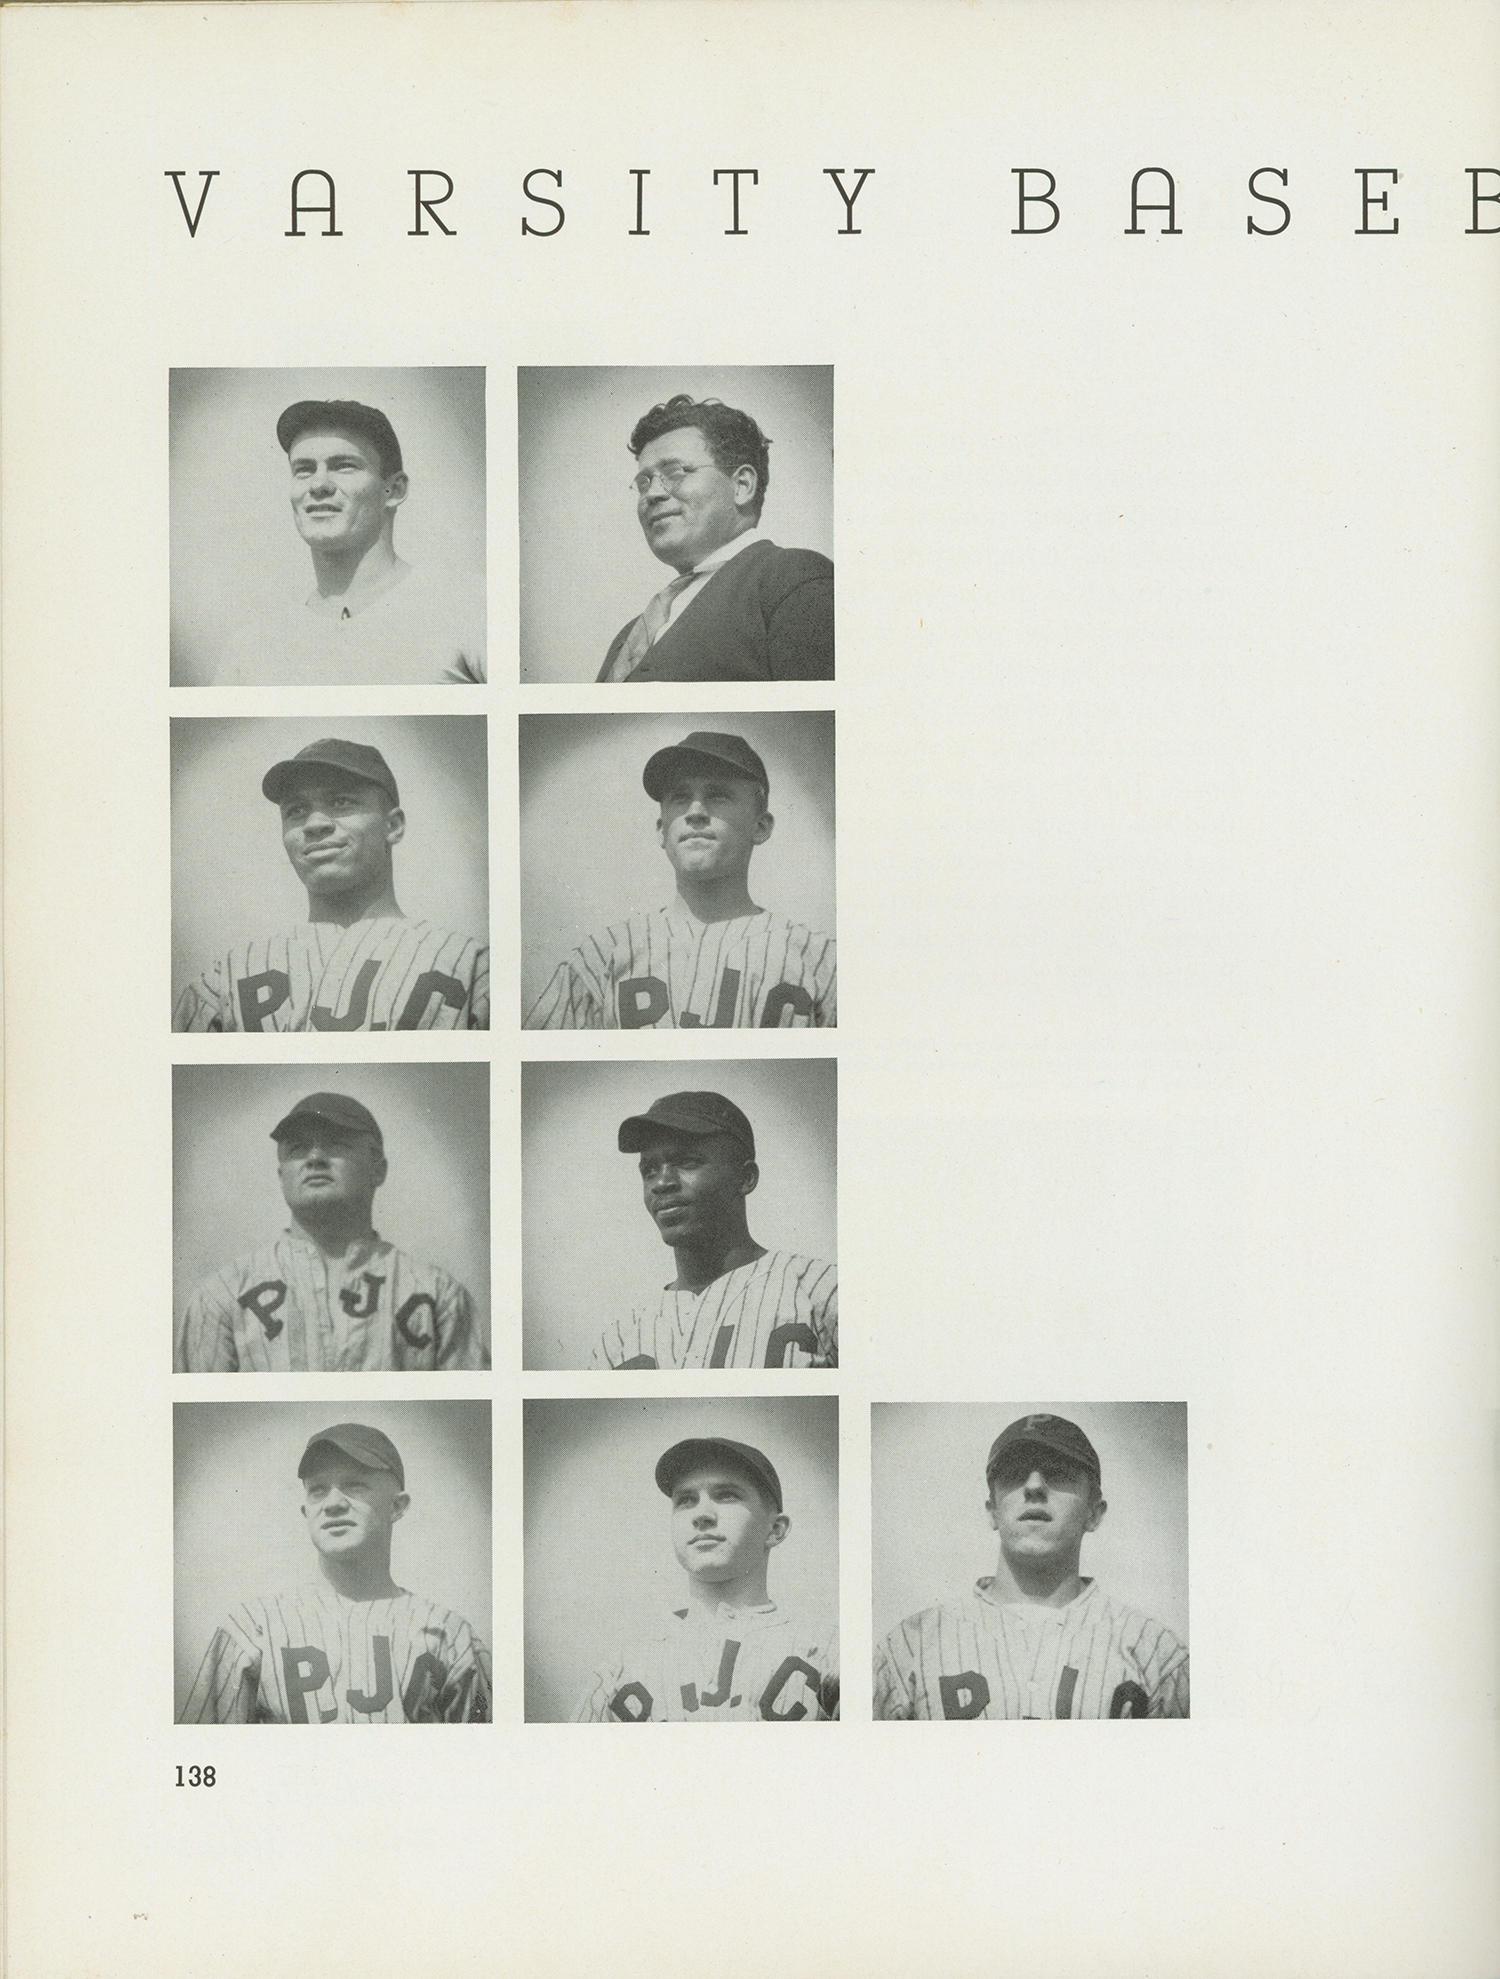 Jackie Robinson played shortstop for Pasadena Junior College from 1937-1938, 10 years before he broke the color barrier in Major League Baseball. He's pictured above in the middle vertical row, second from the bottom. (National Baseball Hall of Fame and Museum)